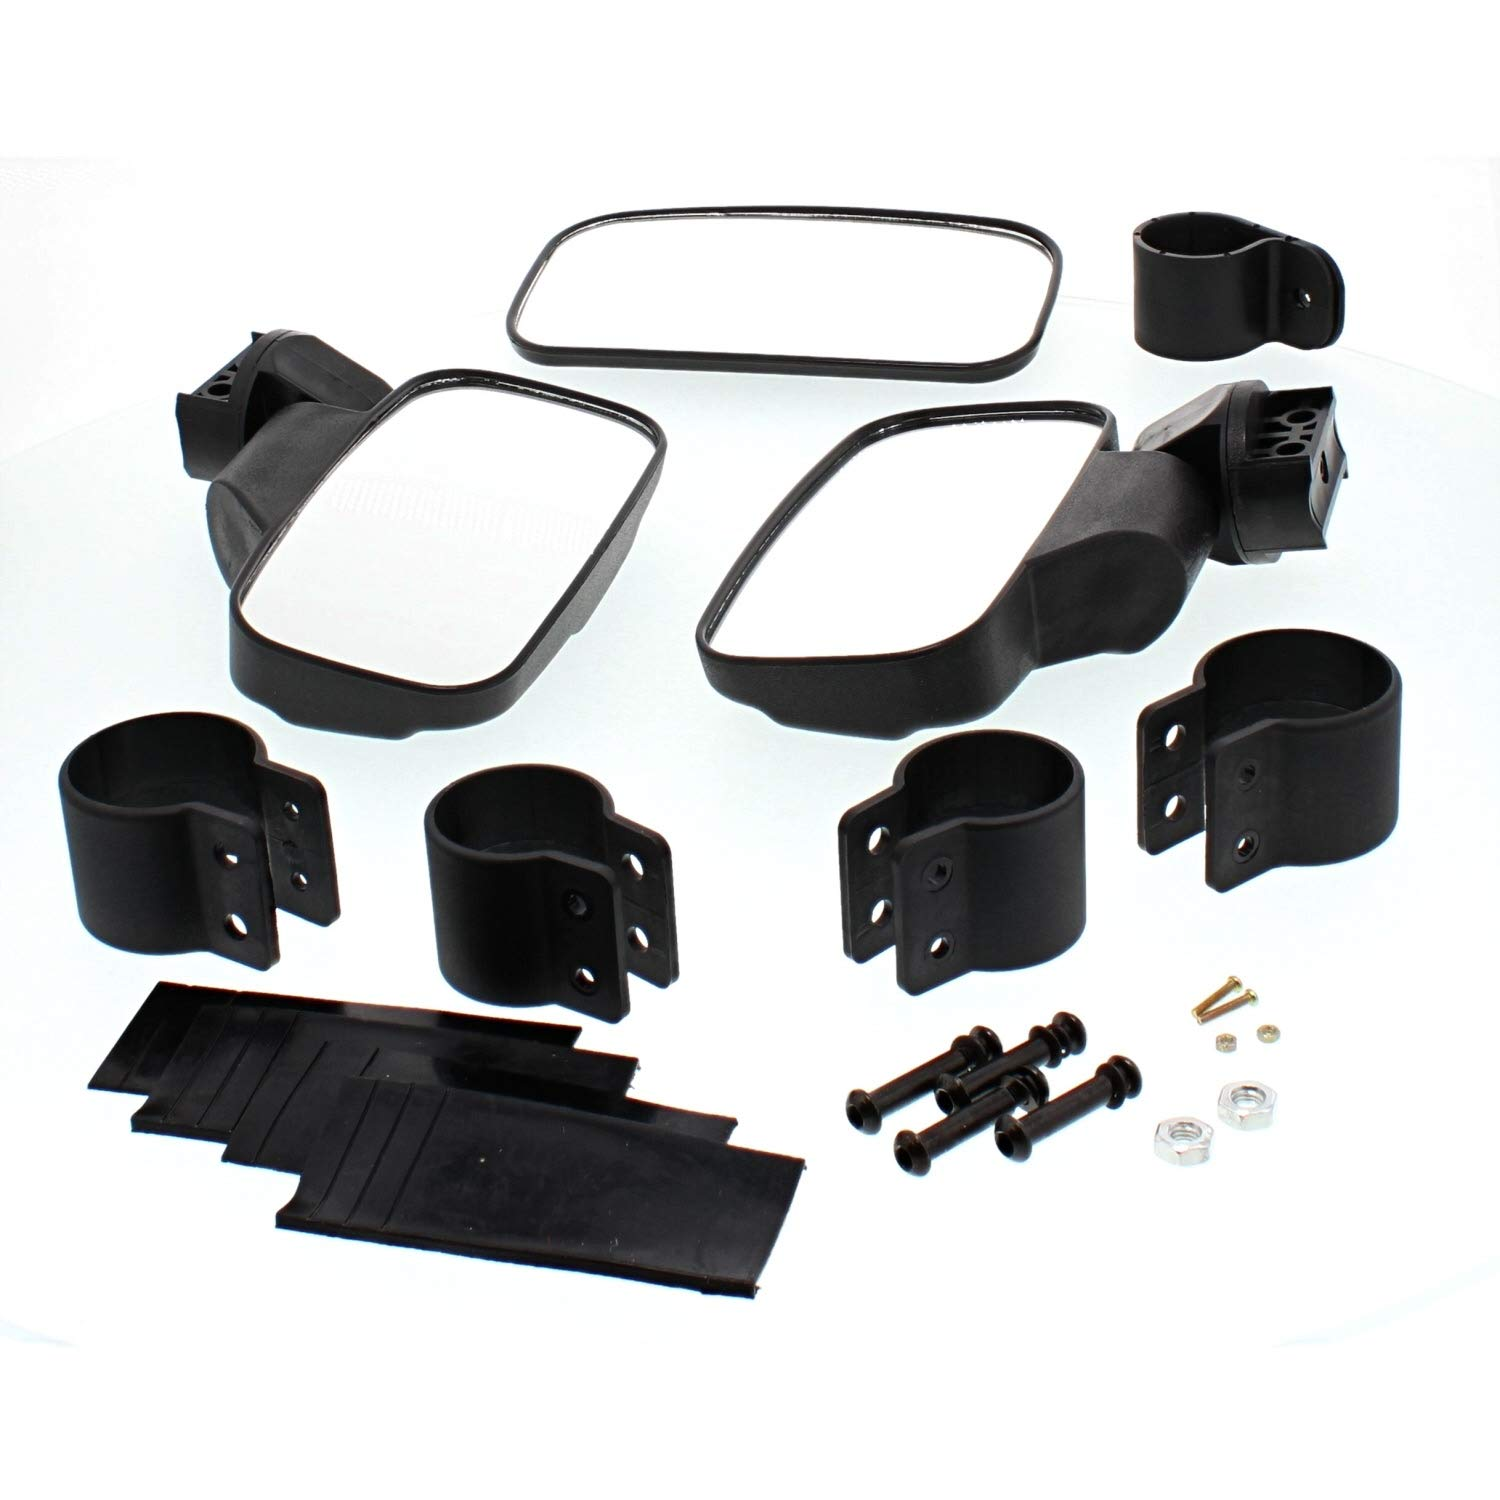 NICHE Black UTV Side /& Rear View Mirror Kit for Honda Pioneer 500 550 700 1000 Niche Industries